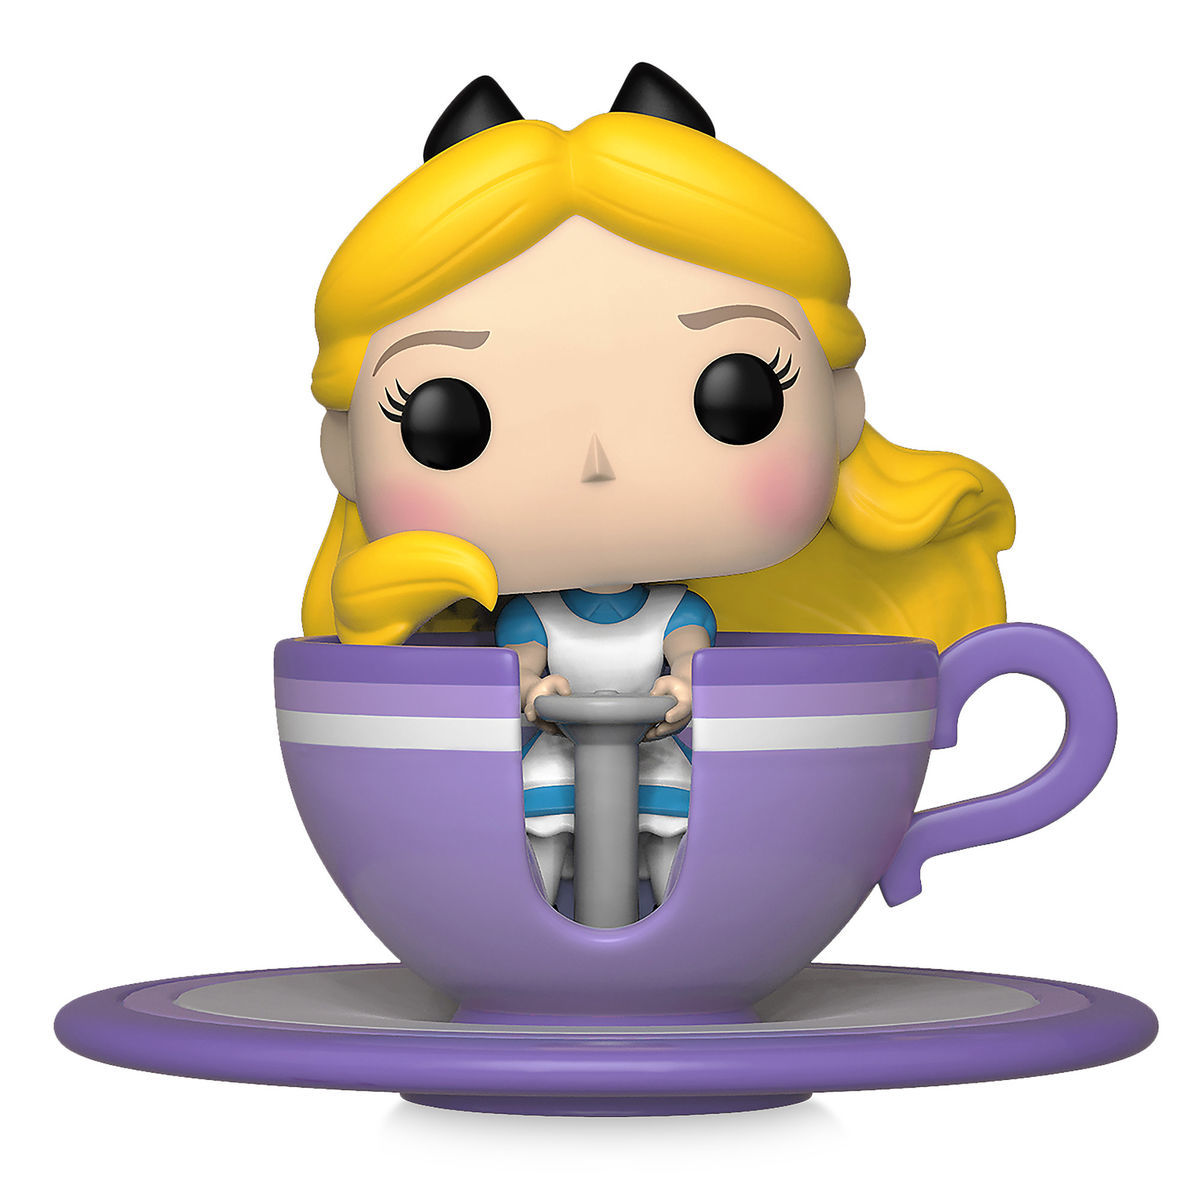 8c34c14f6c3 The much anticipated Alice at the Mad Tea Party Disney Parks Exclusive Funko  Pop has been released today at the following Walt Disney World locations